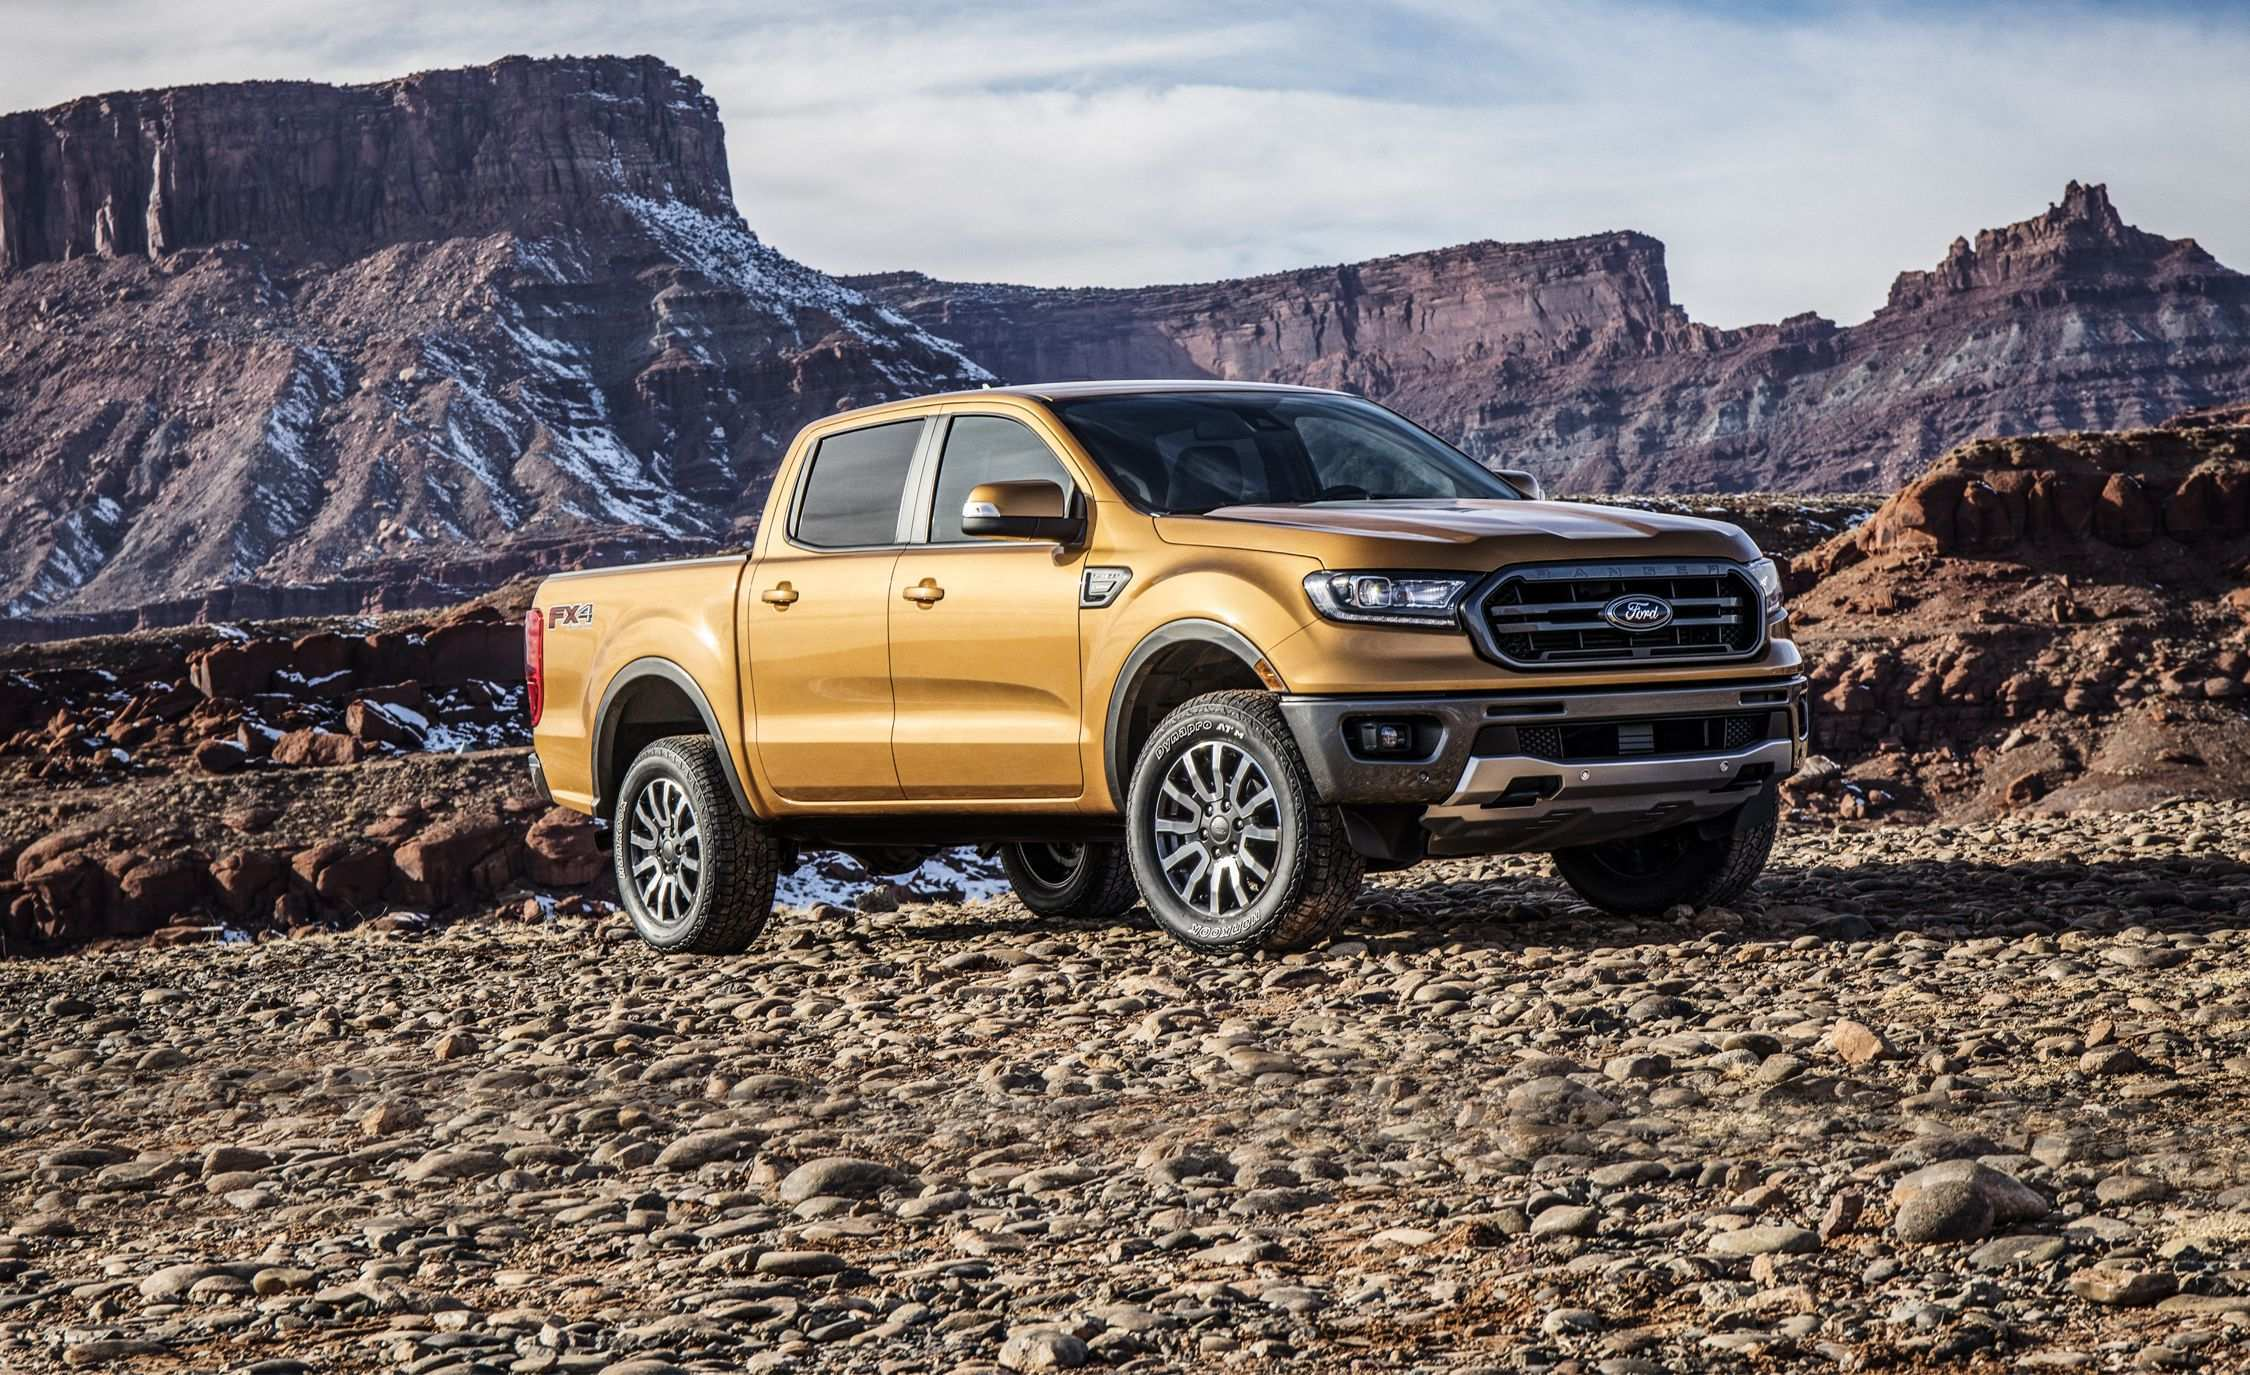 40 Concept of 2019 Ford Pickup Truck Ratings with 2019 Ford Pickup Truck